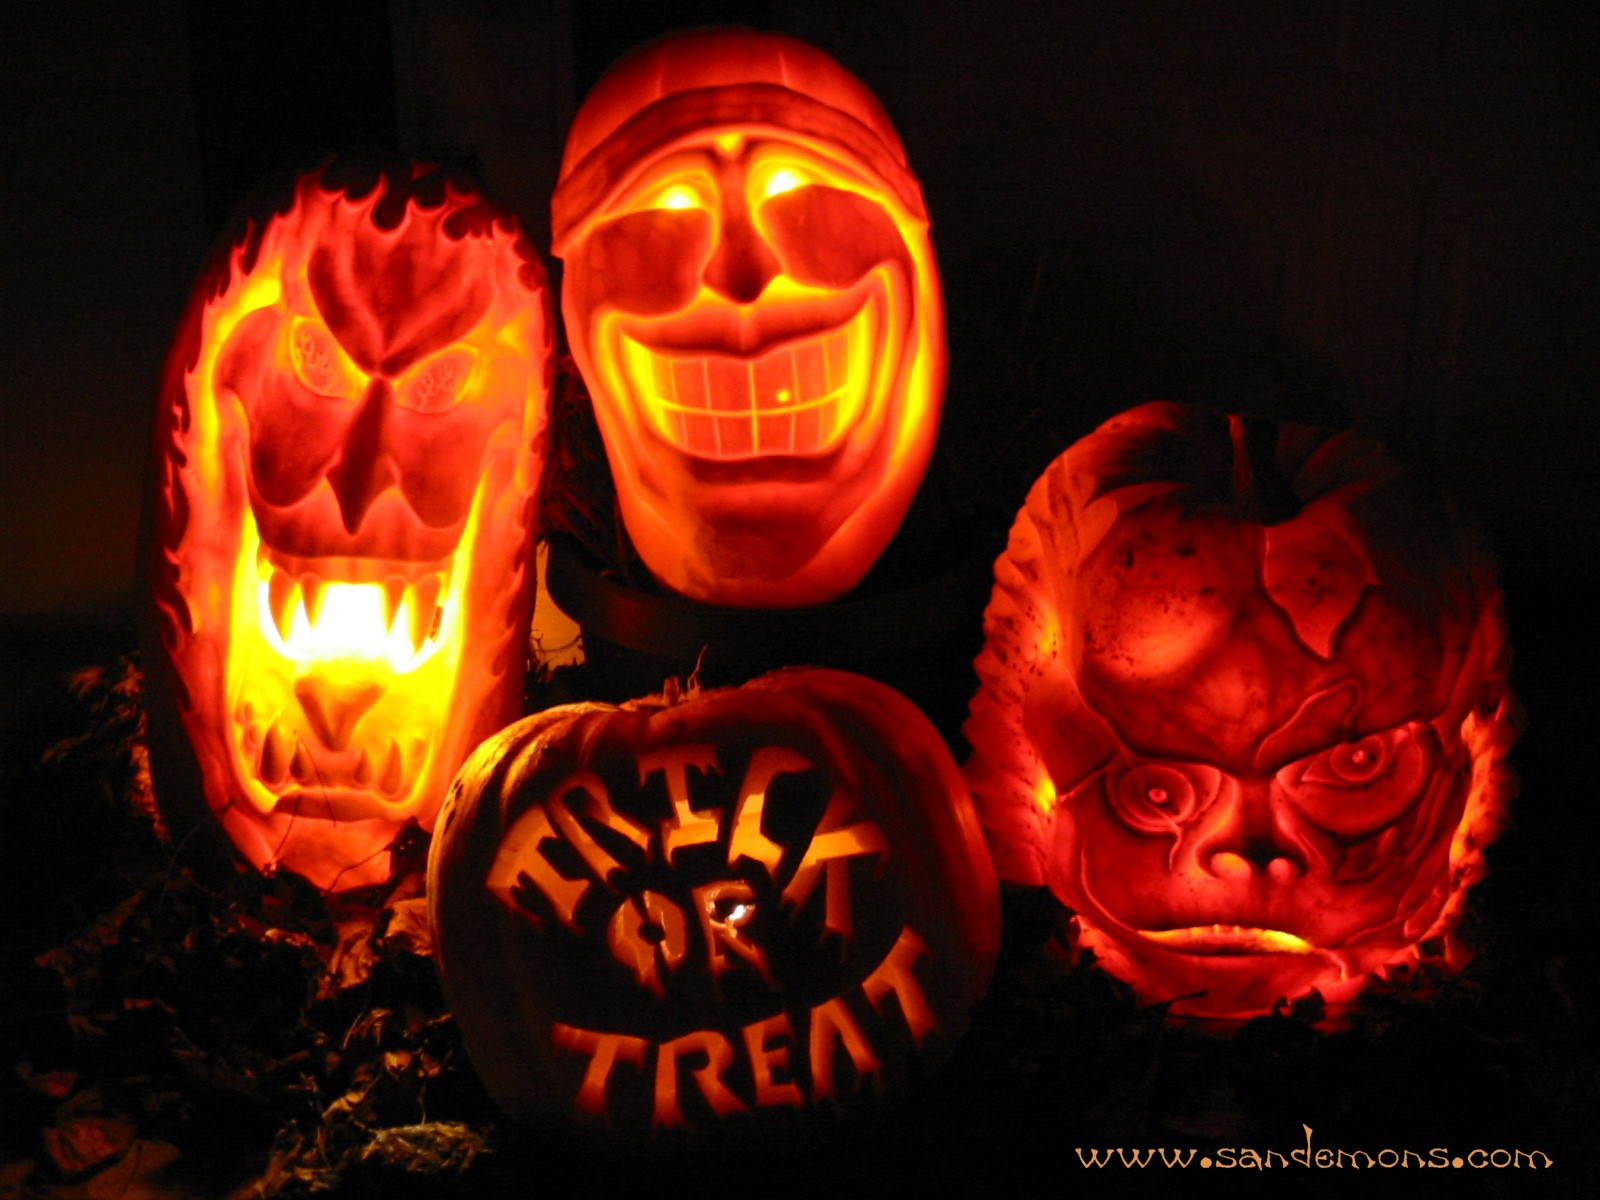 Trick 'or' Treat